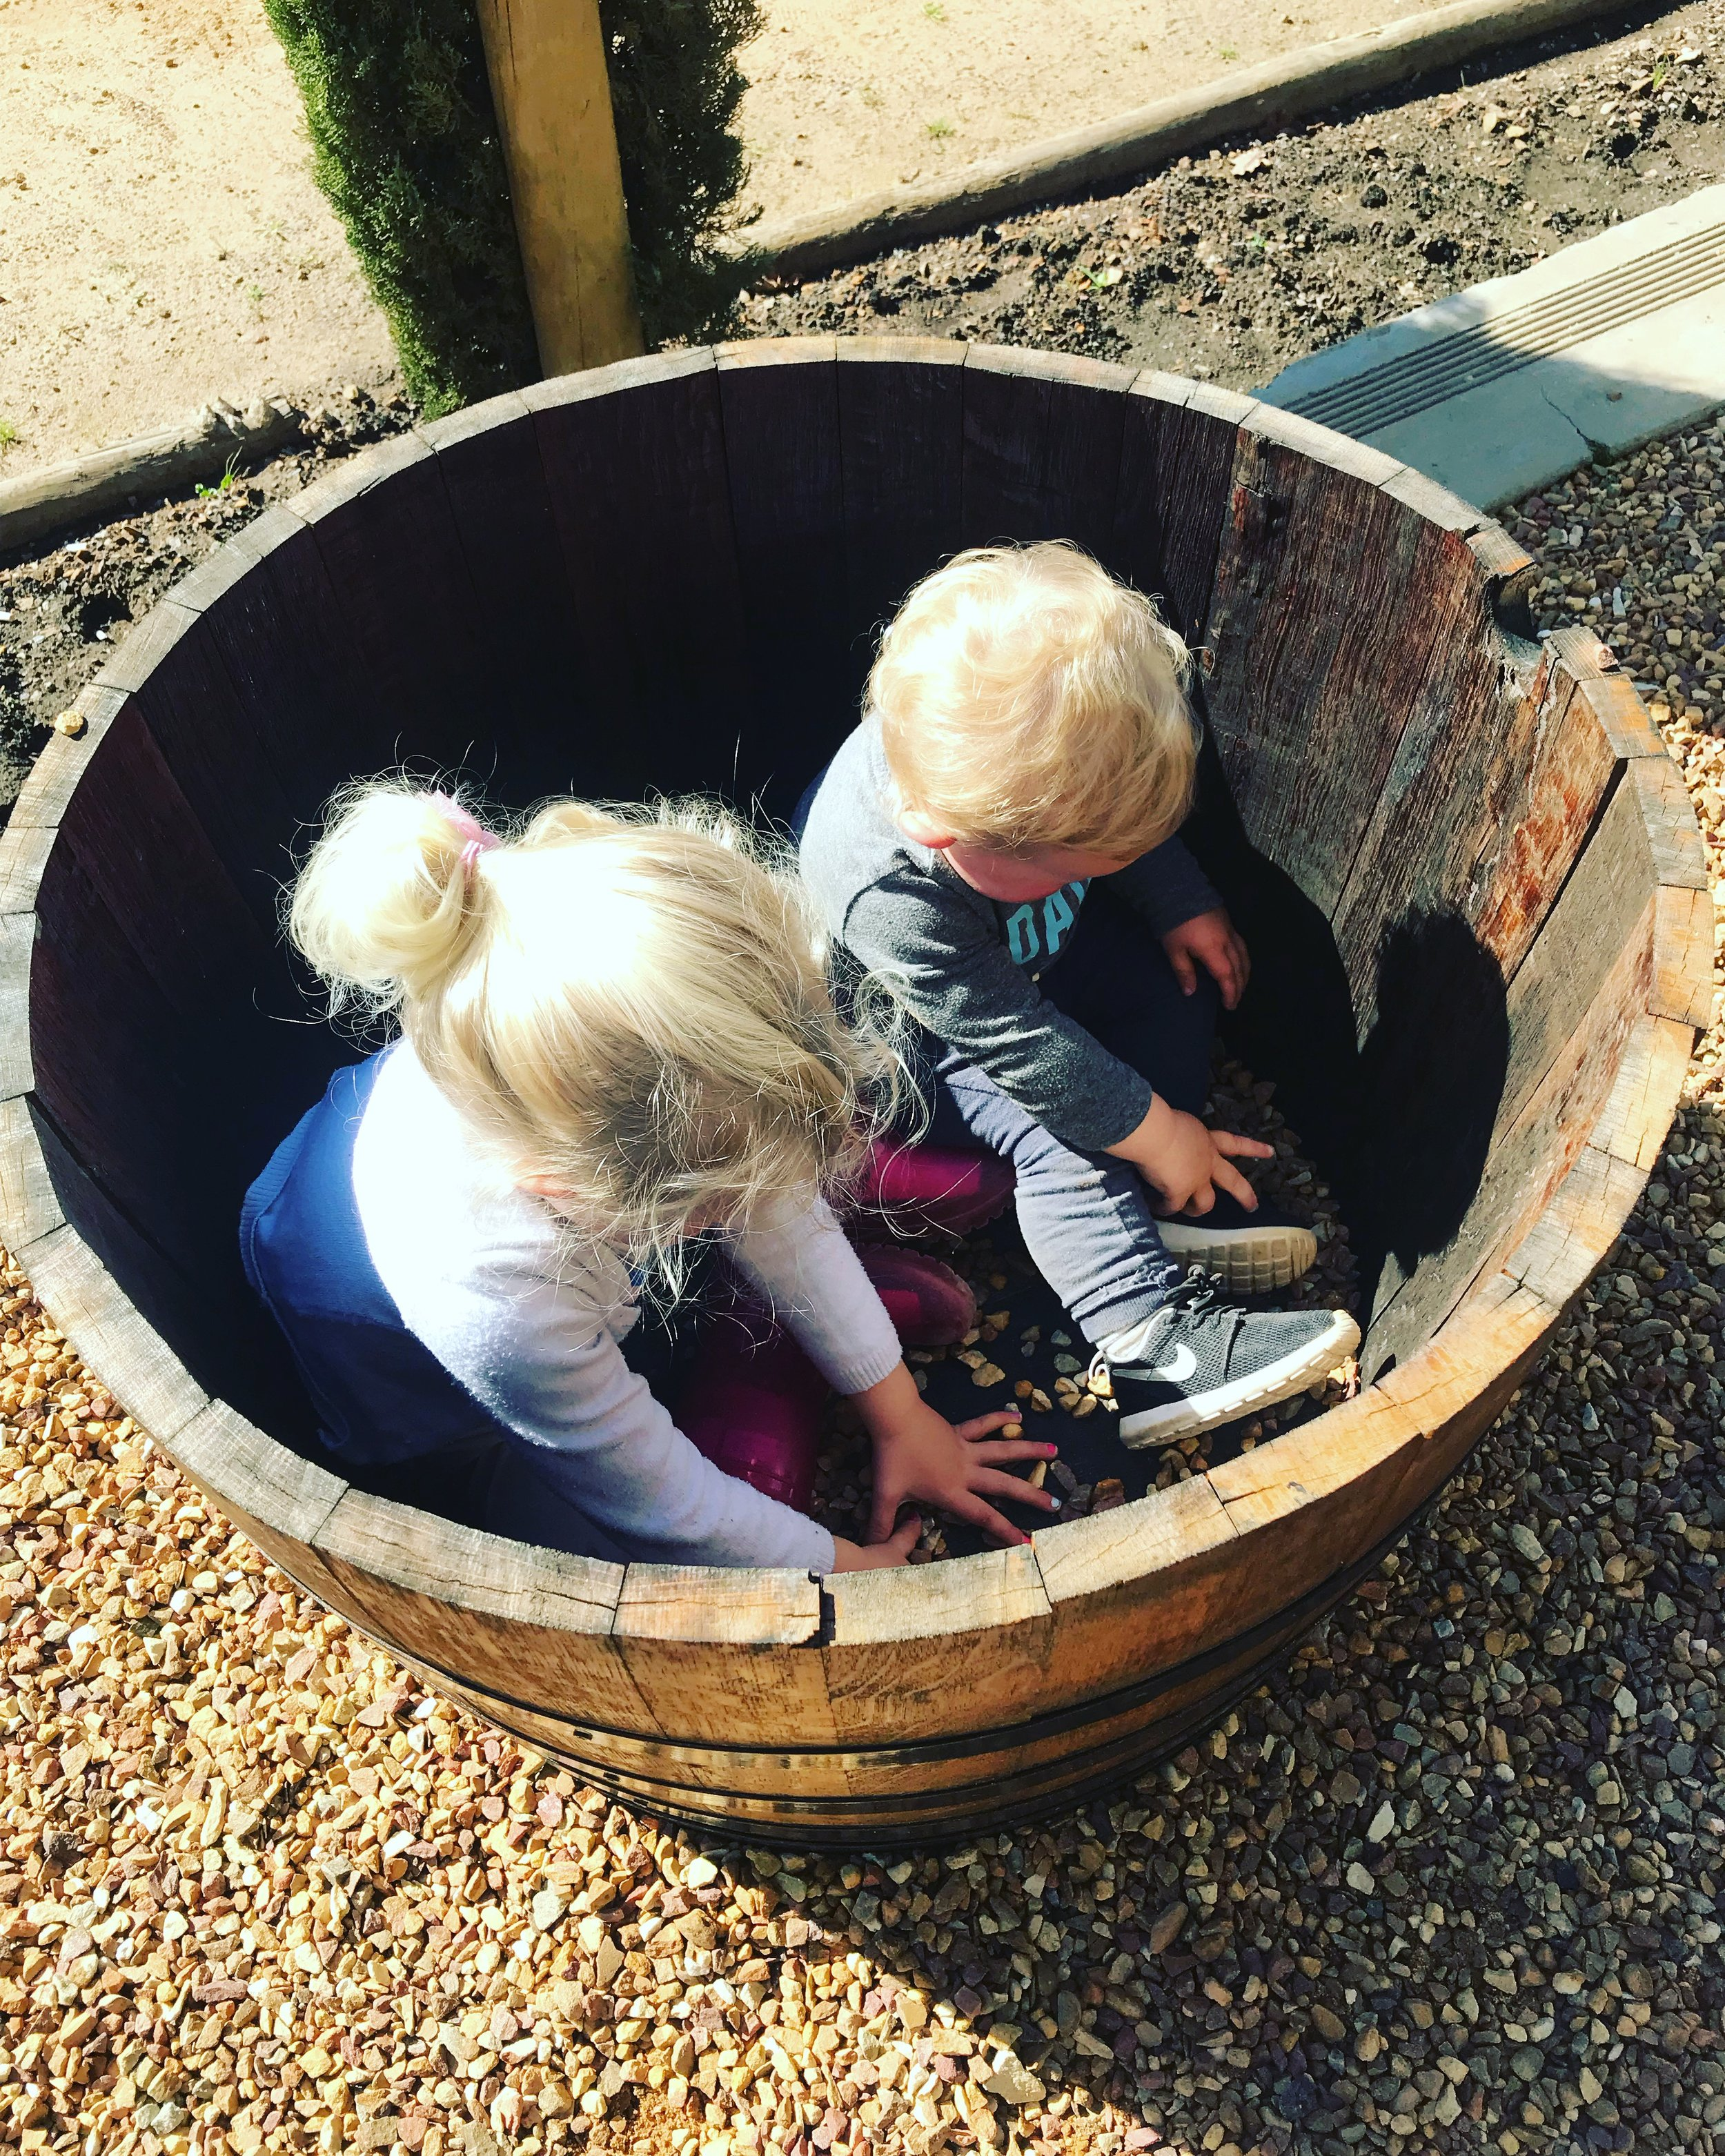 apologies that this is not an accurate depiction of the play area or restaurant; this is at the wine tasting centre which is not kid friendly which is why they were in the wine barrels :D